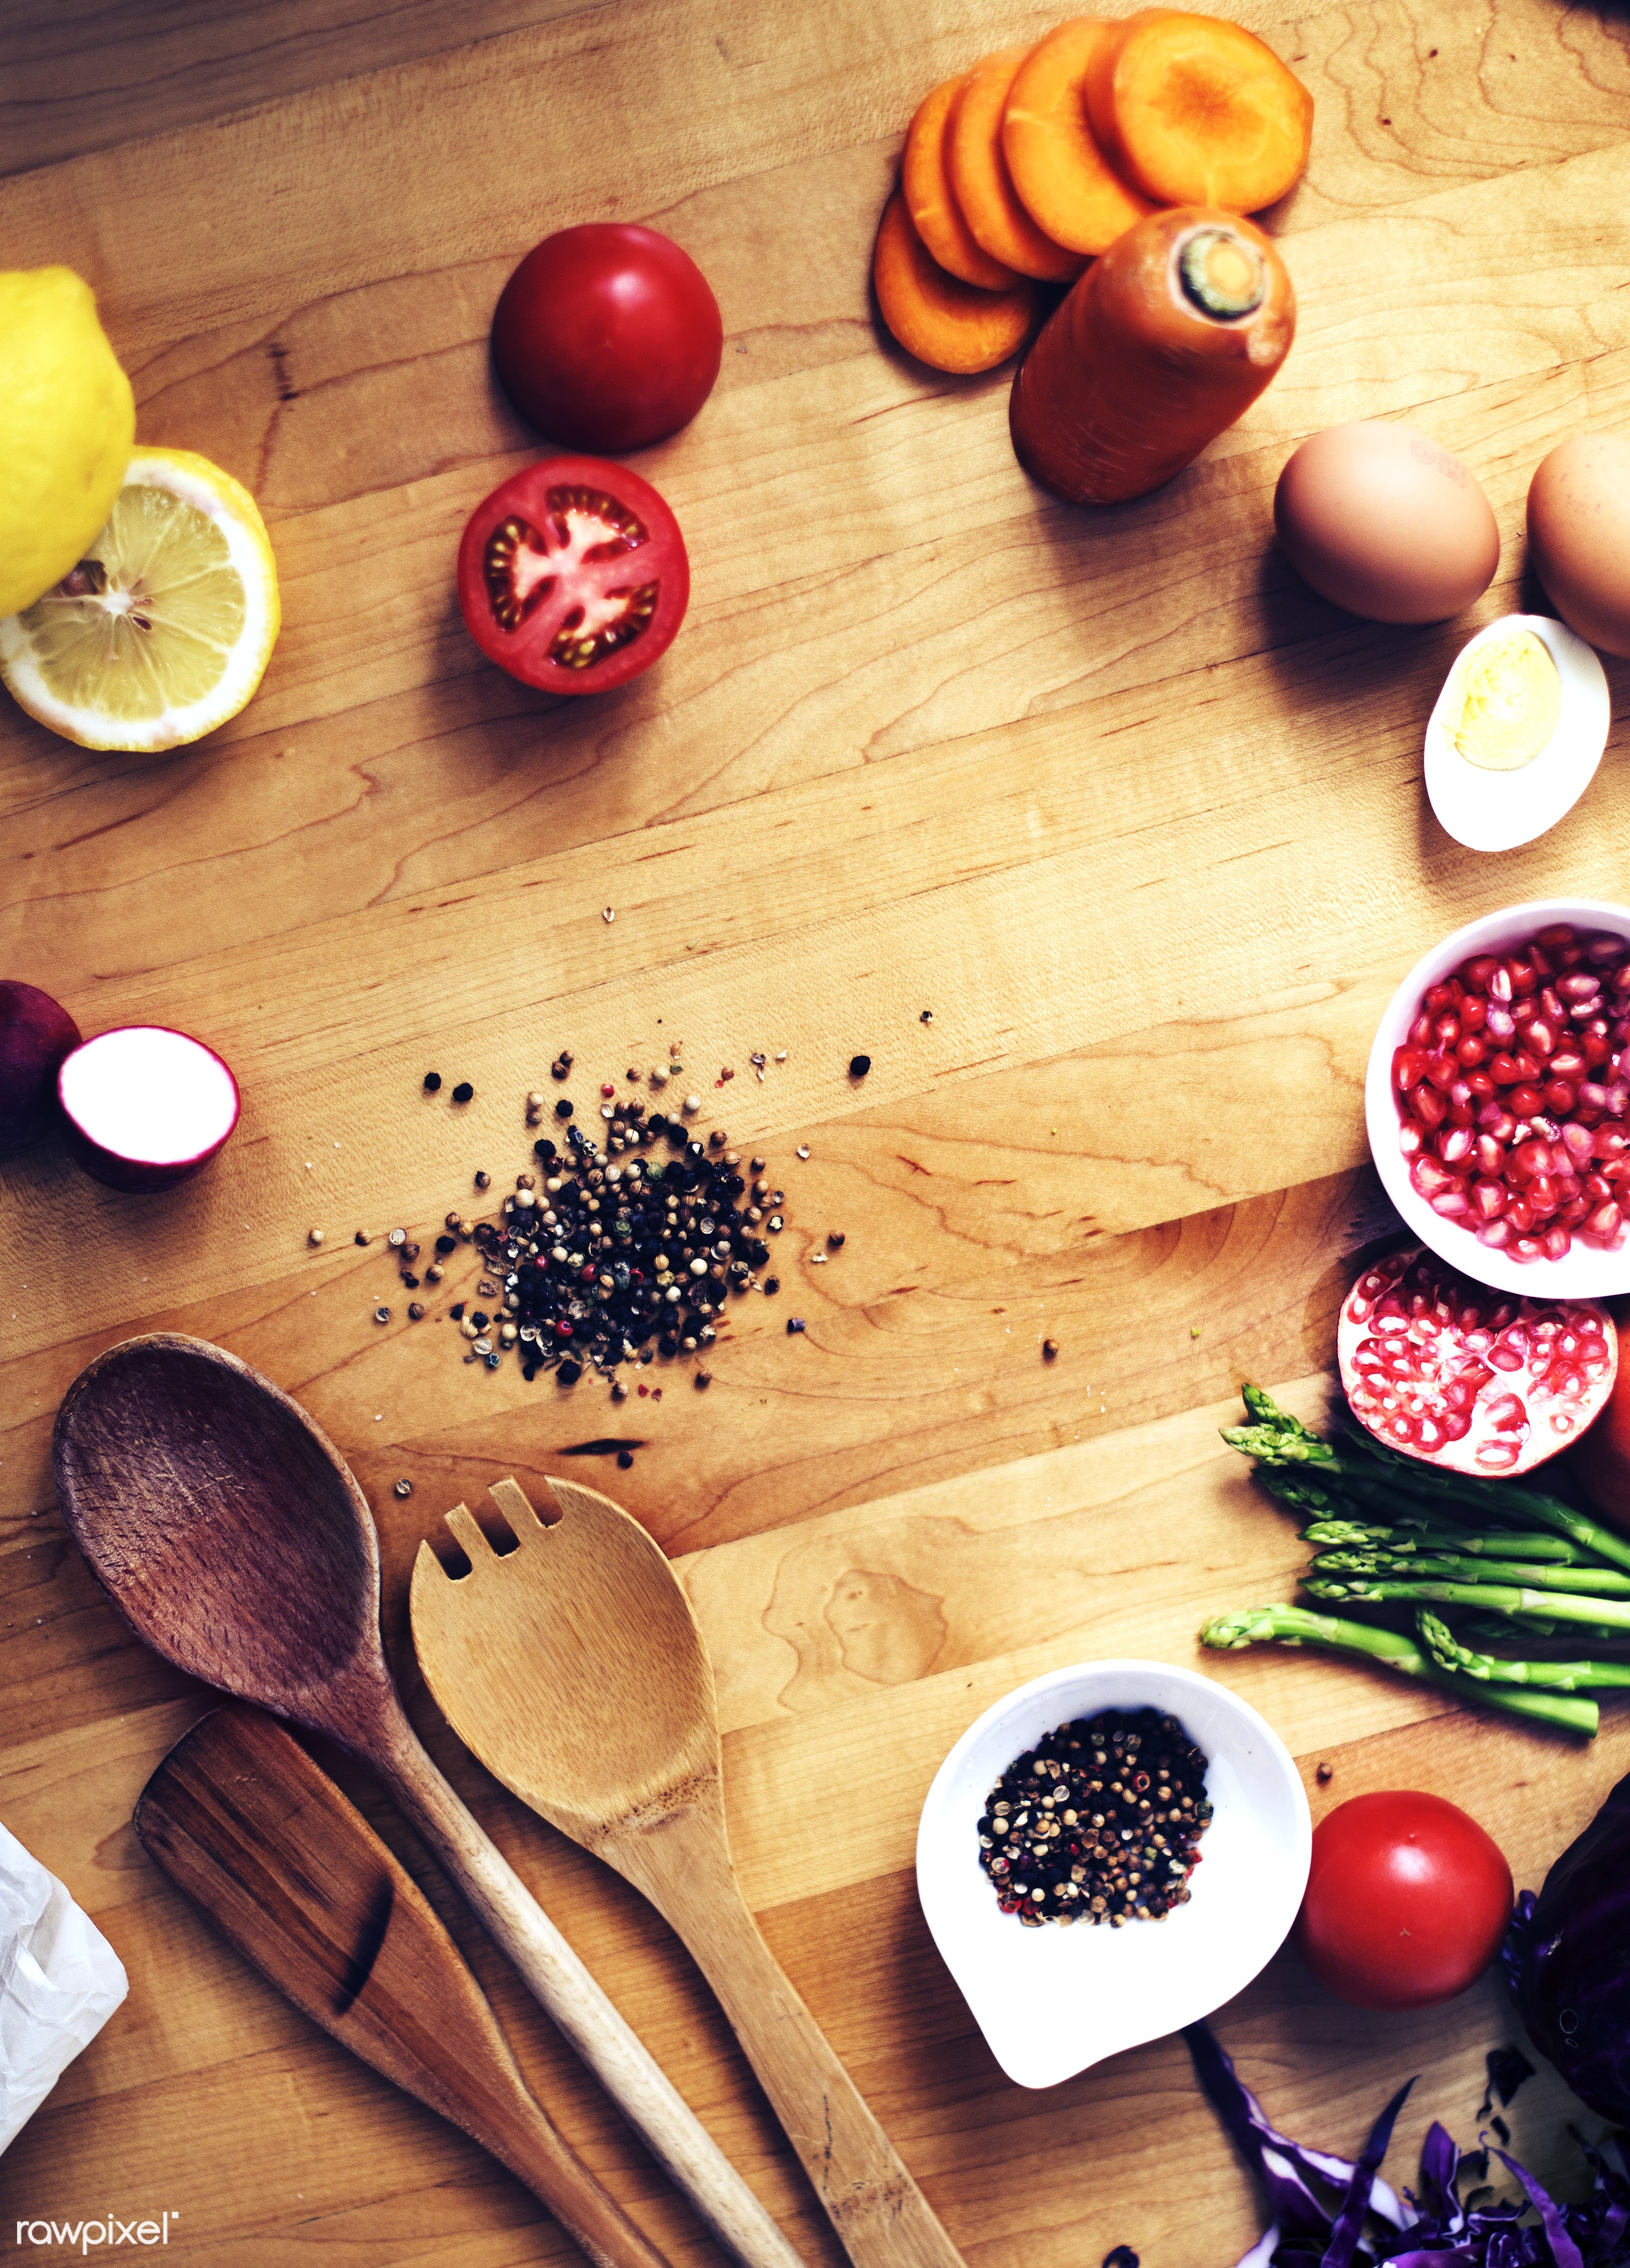 cooking, appliance, asparagus, breakfast, cookery, cookhouse, cookware, cuisine, culinary, dietary, equipment, food, fruits...